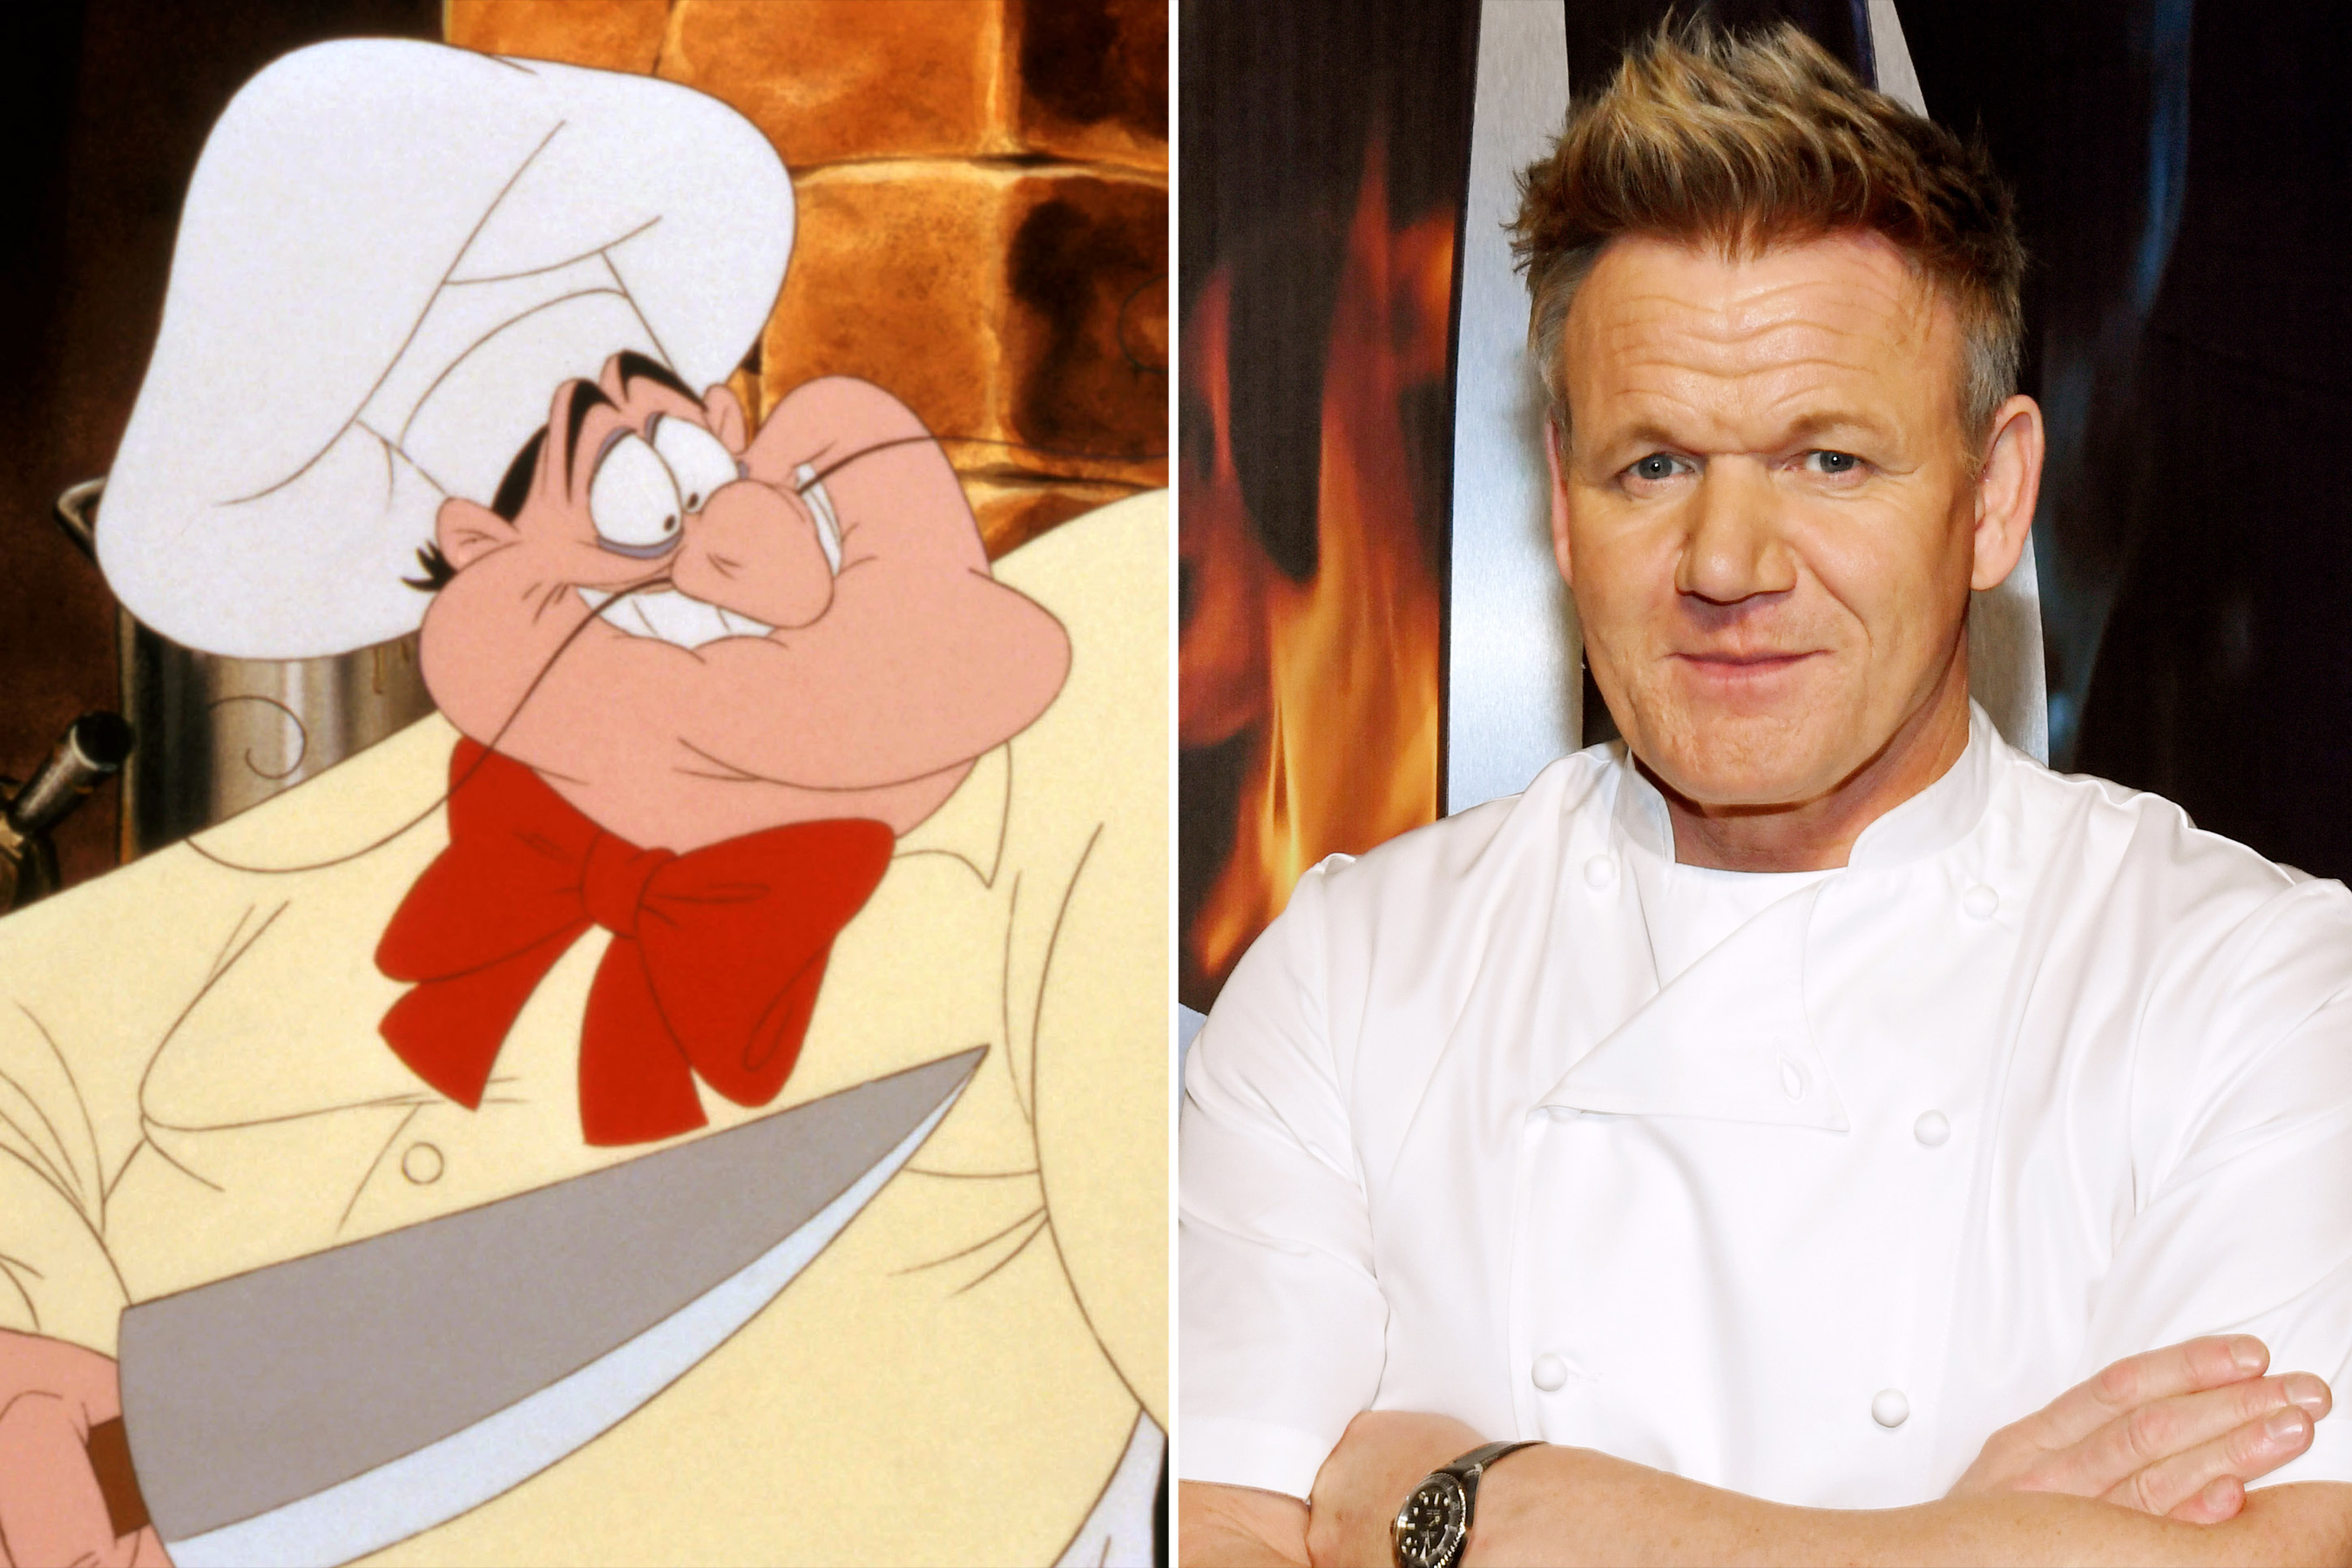 The Little Mermaid Fans Want Gordon Ramsay Playing Angry Chef Louis in Live-Action Adaptation